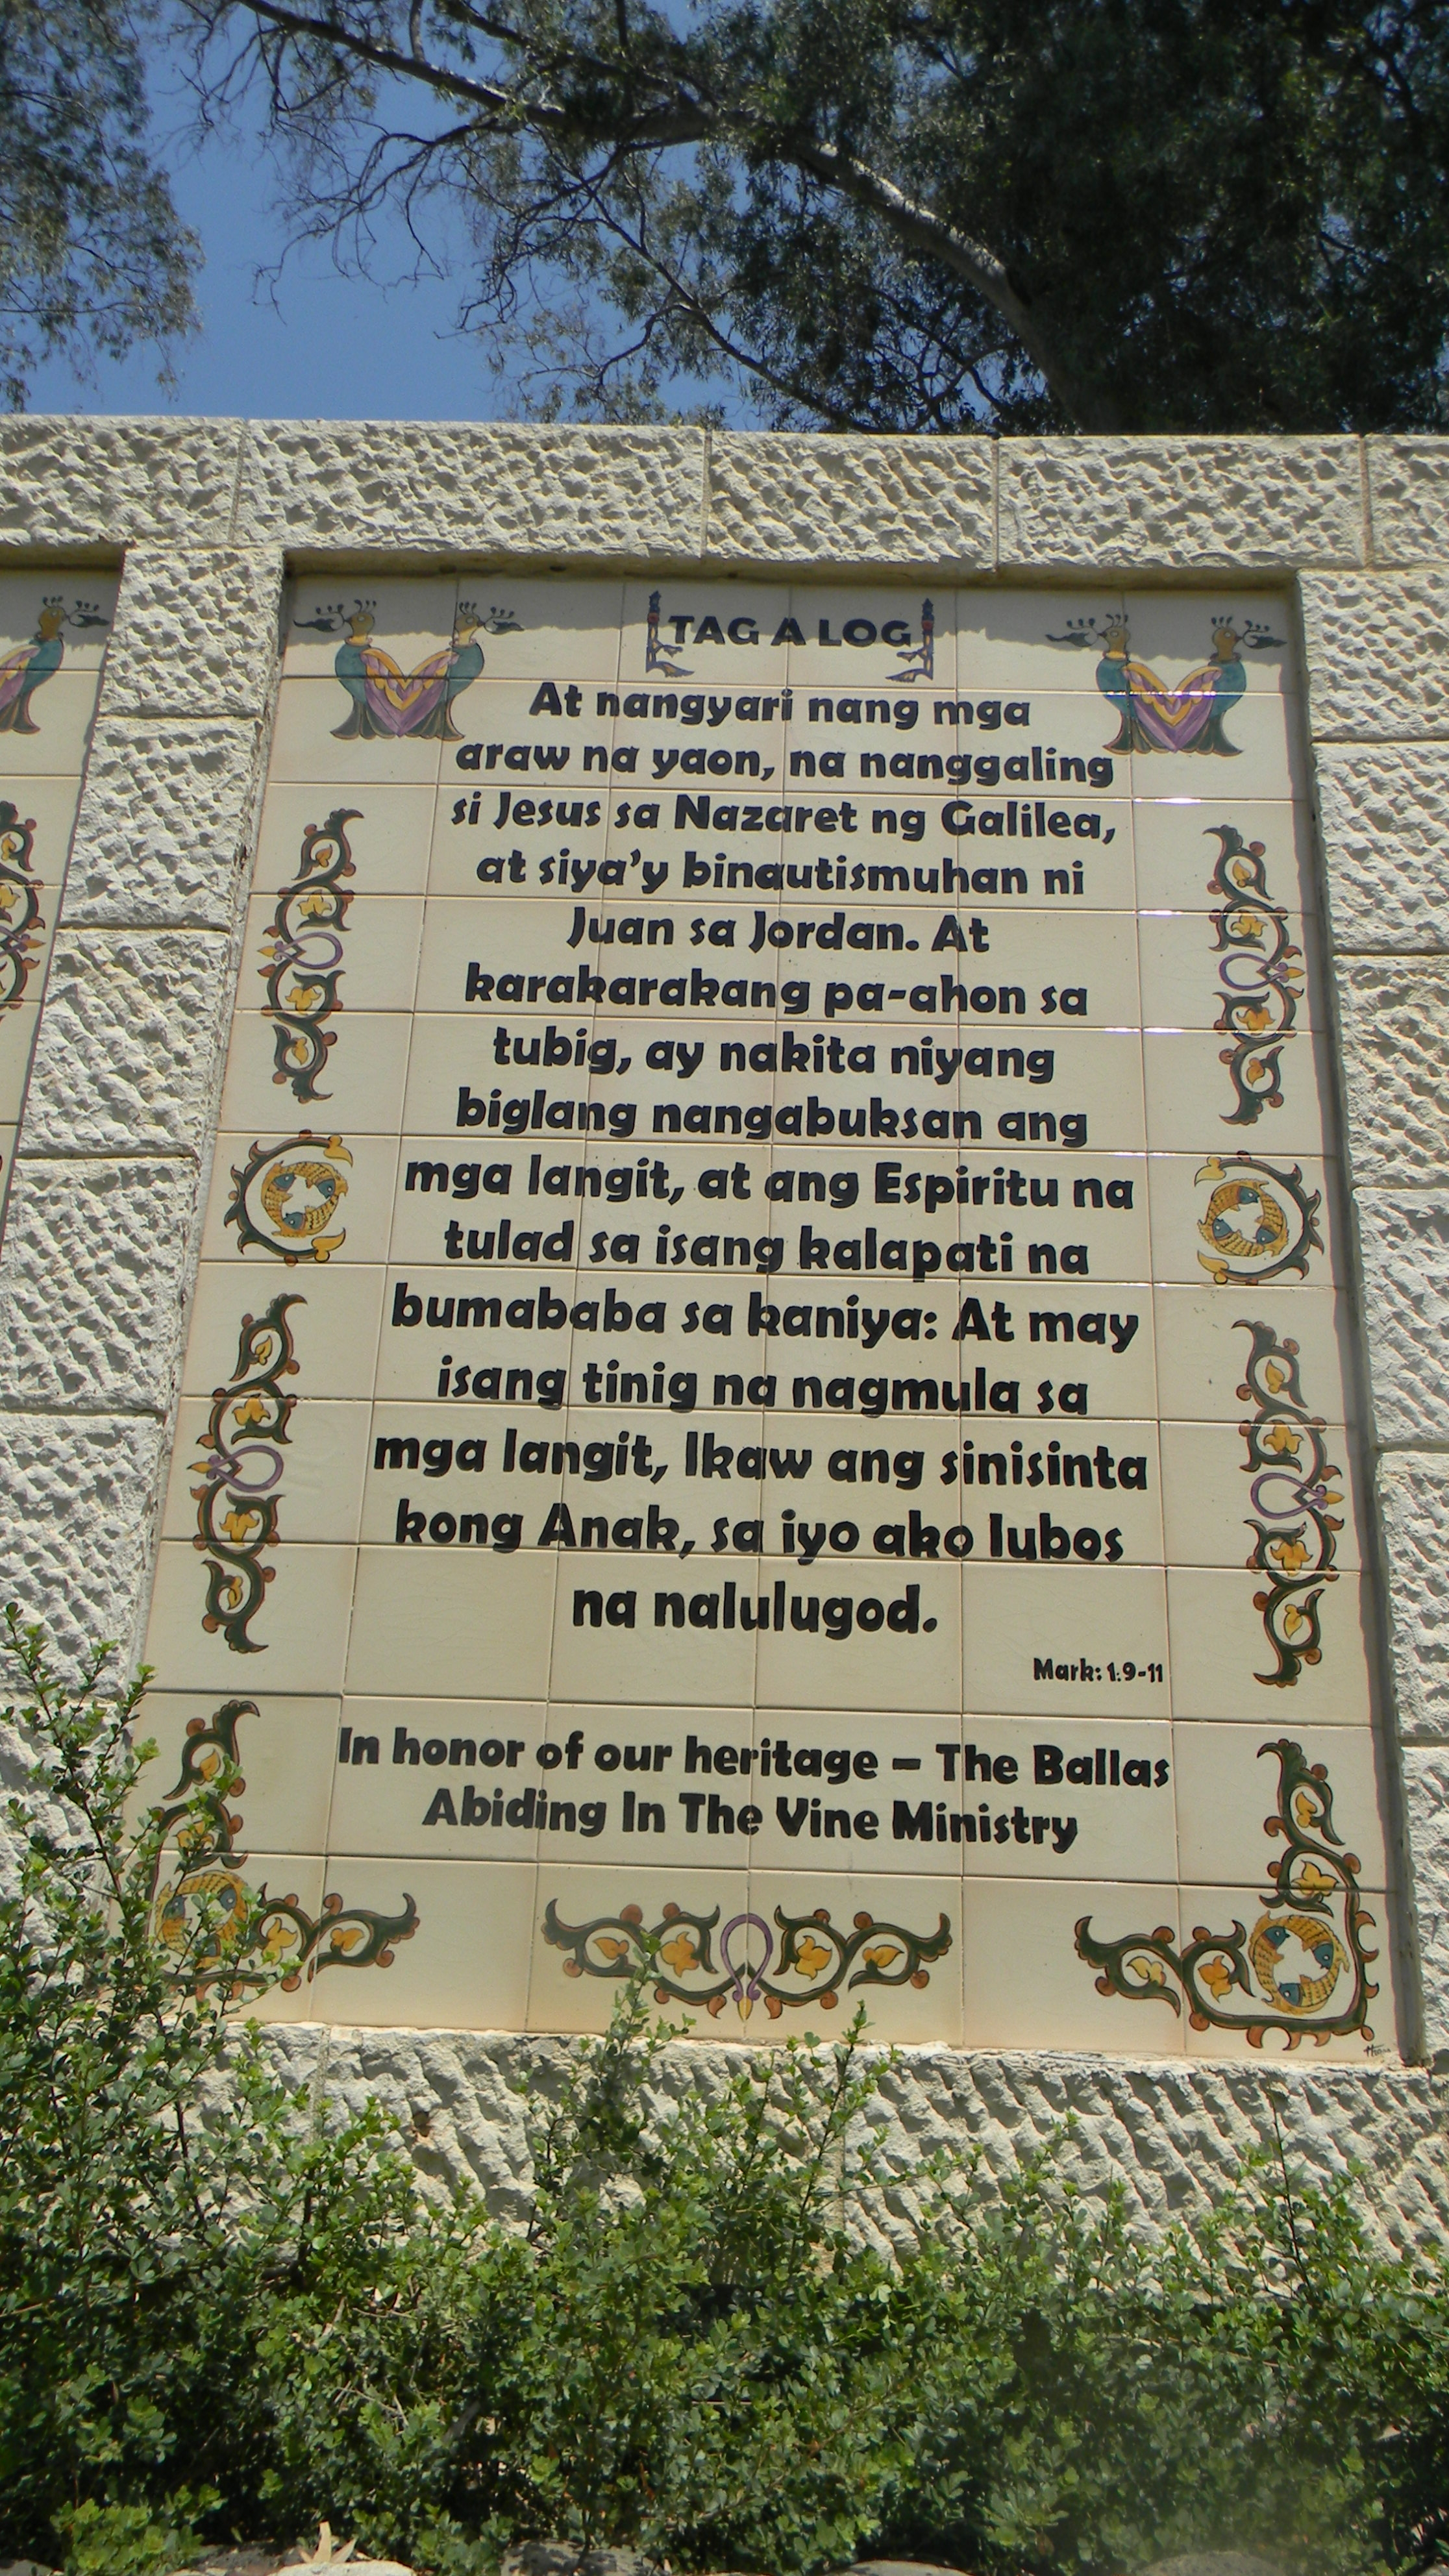 Panel in Tagalog (from the Philippines)